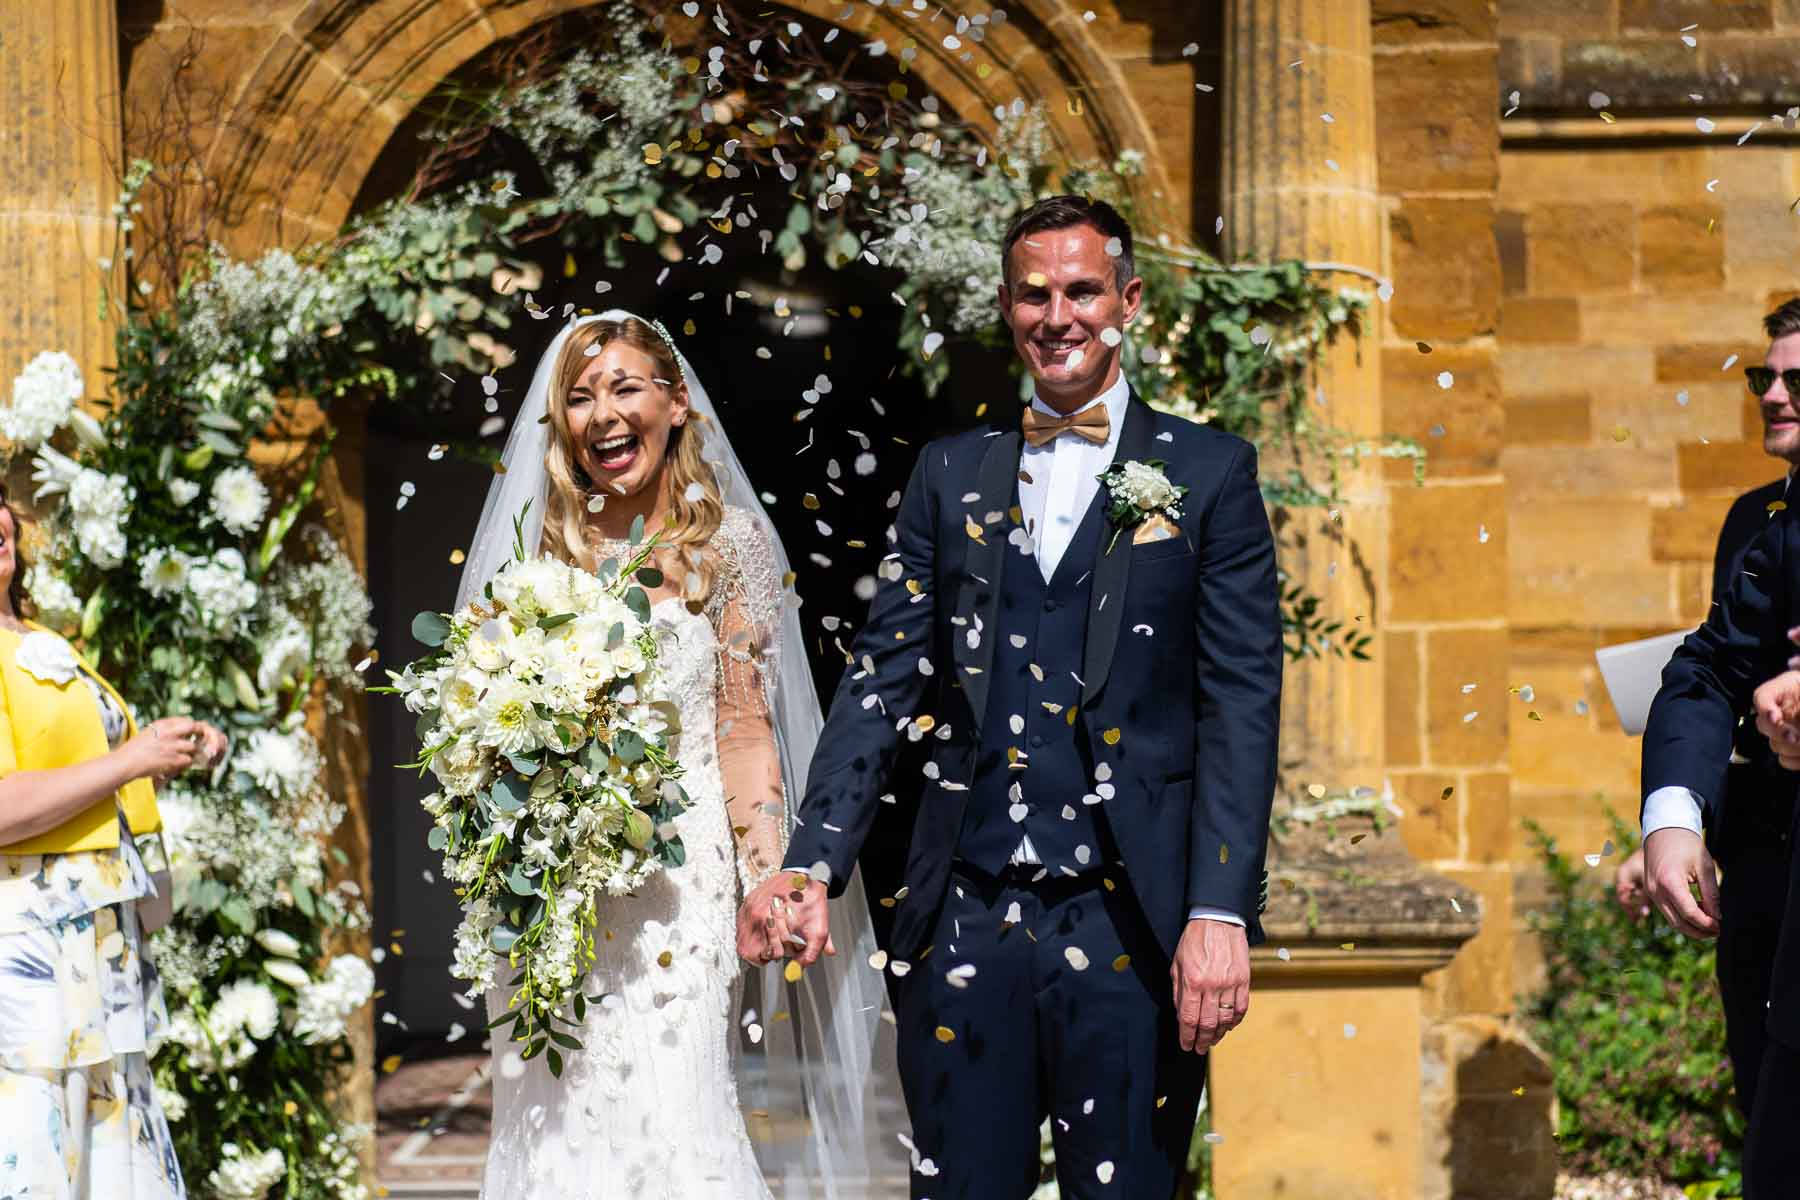 Lovely wedding ideas of flower arch at Delapre Abbey northampton